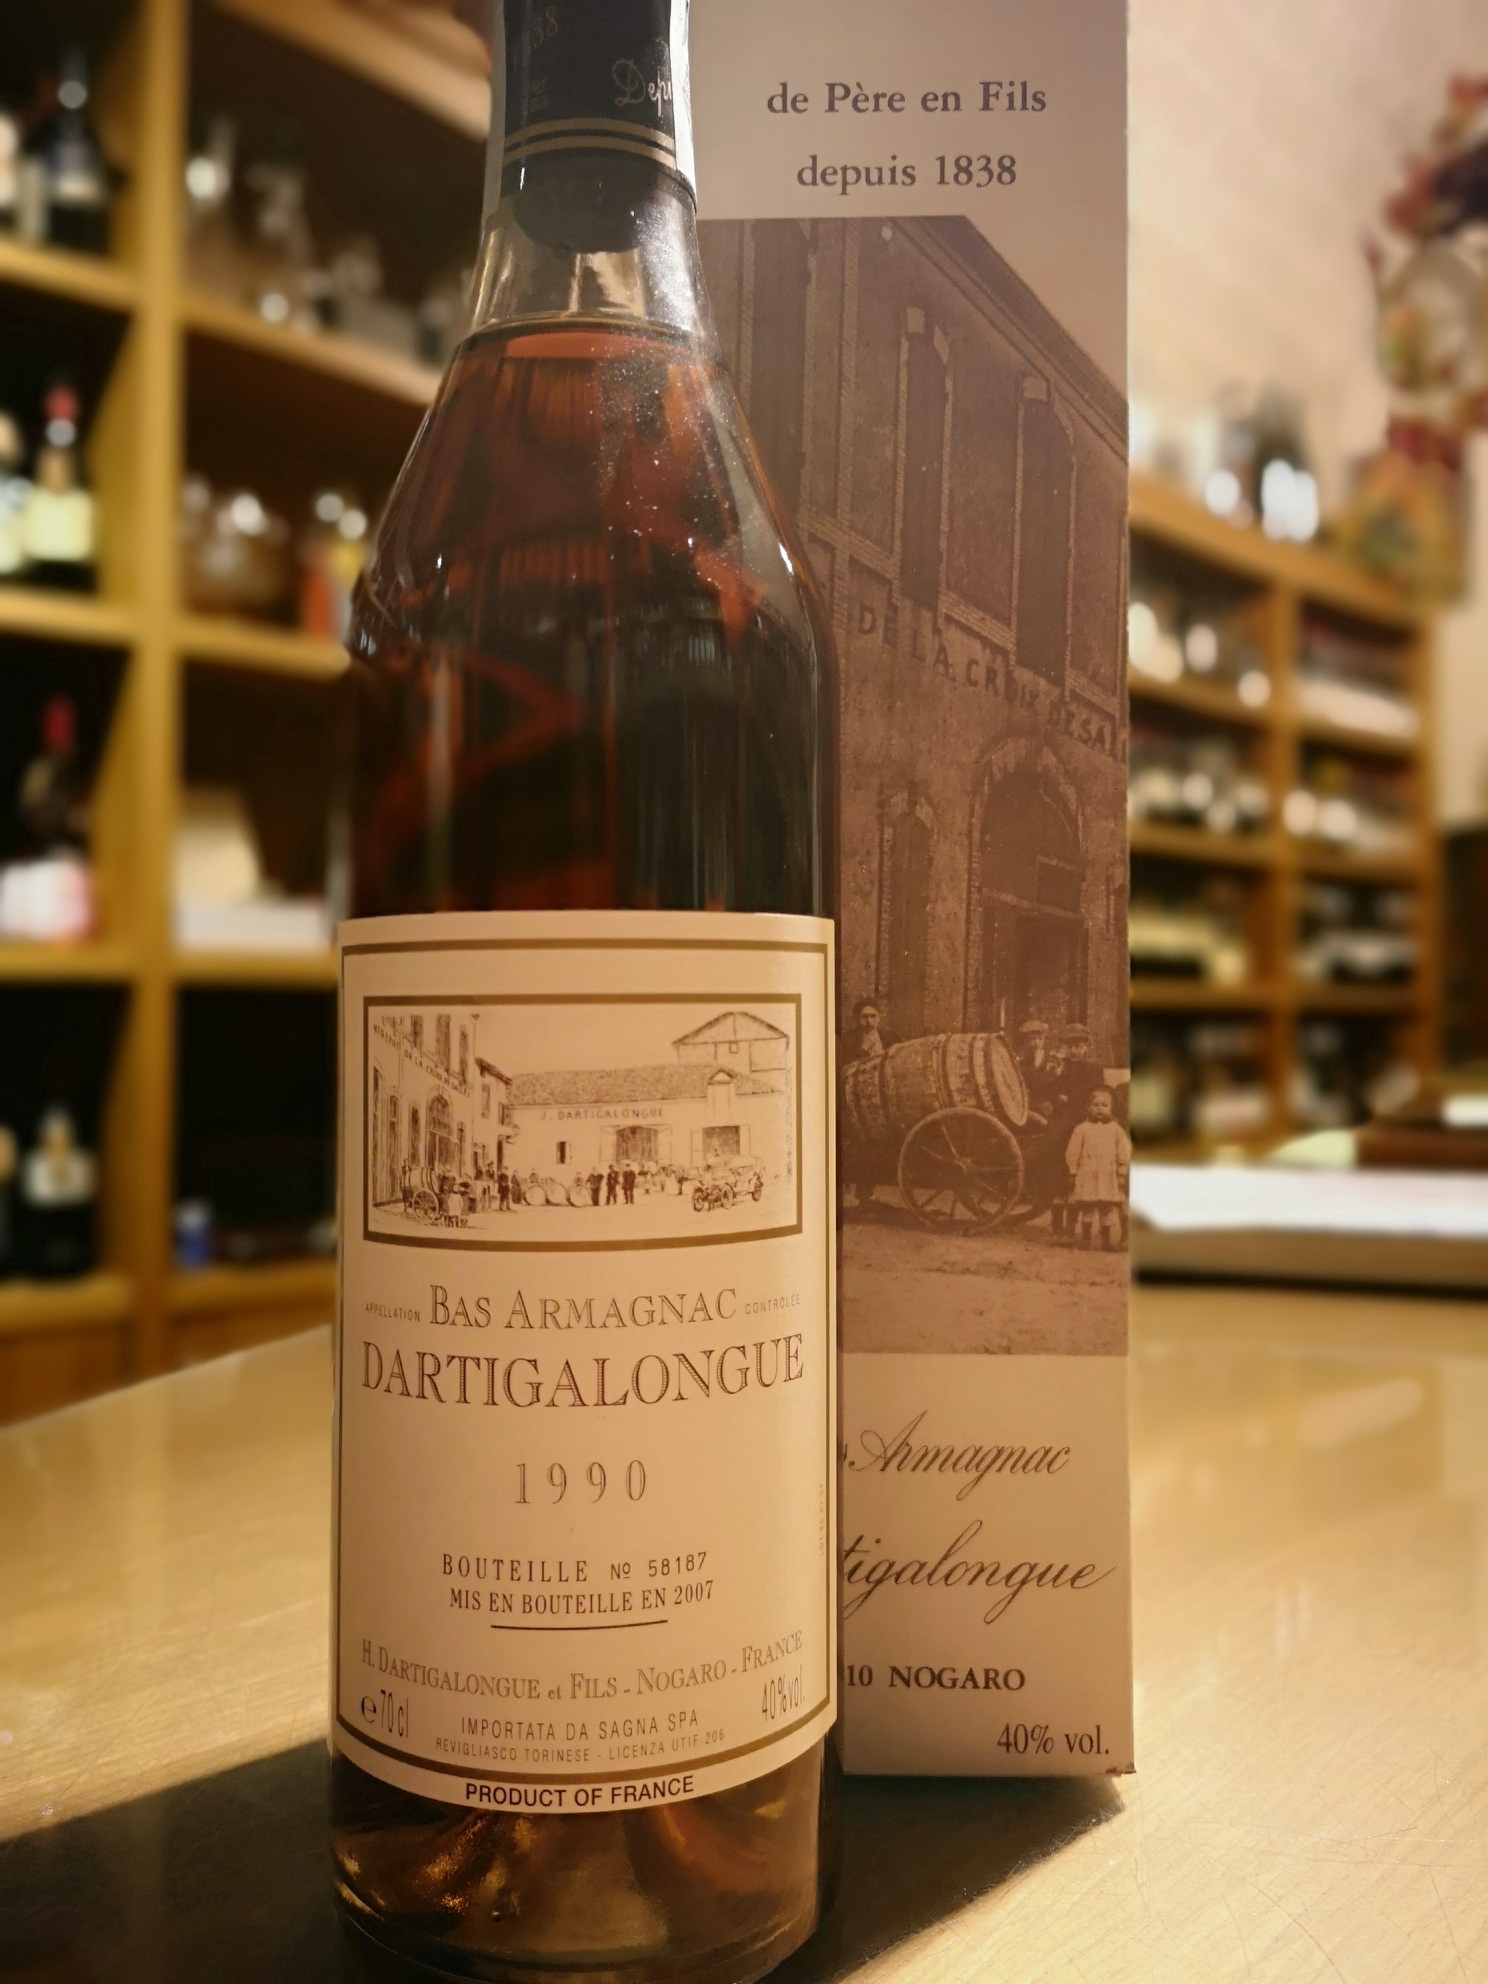 Bas Armagnac Dartigalongue 1990